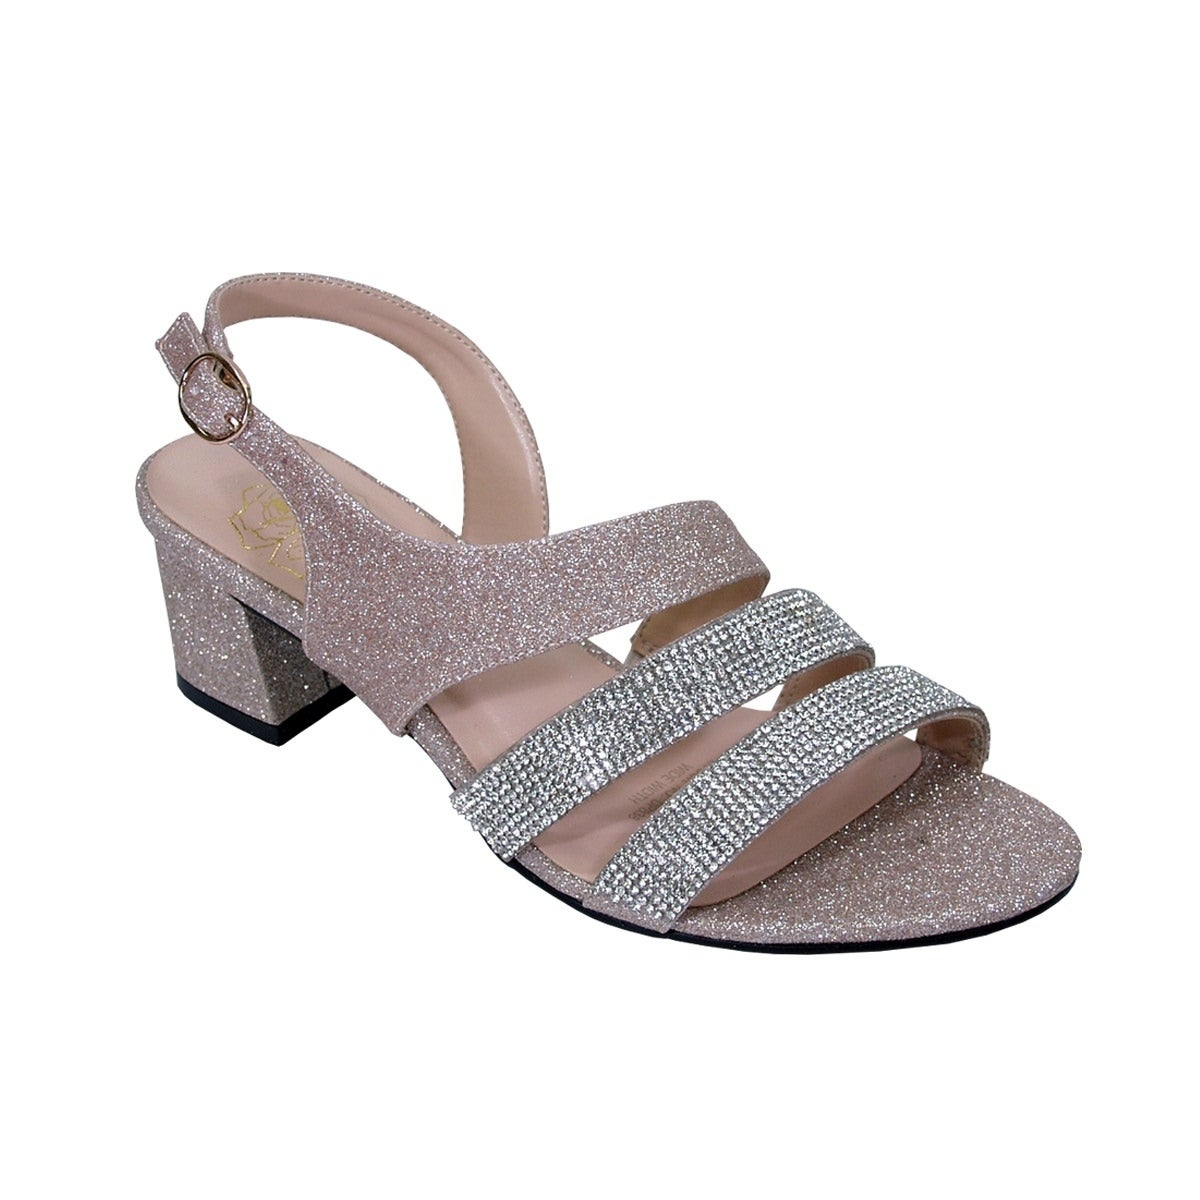 e6365e8161cf23 Shop FLORAL Dorothy Women Extra Wide Width Rhinestone Dressy Party Sandals  - Free Shipping On Orders Over  45 - Overstock - 20005016